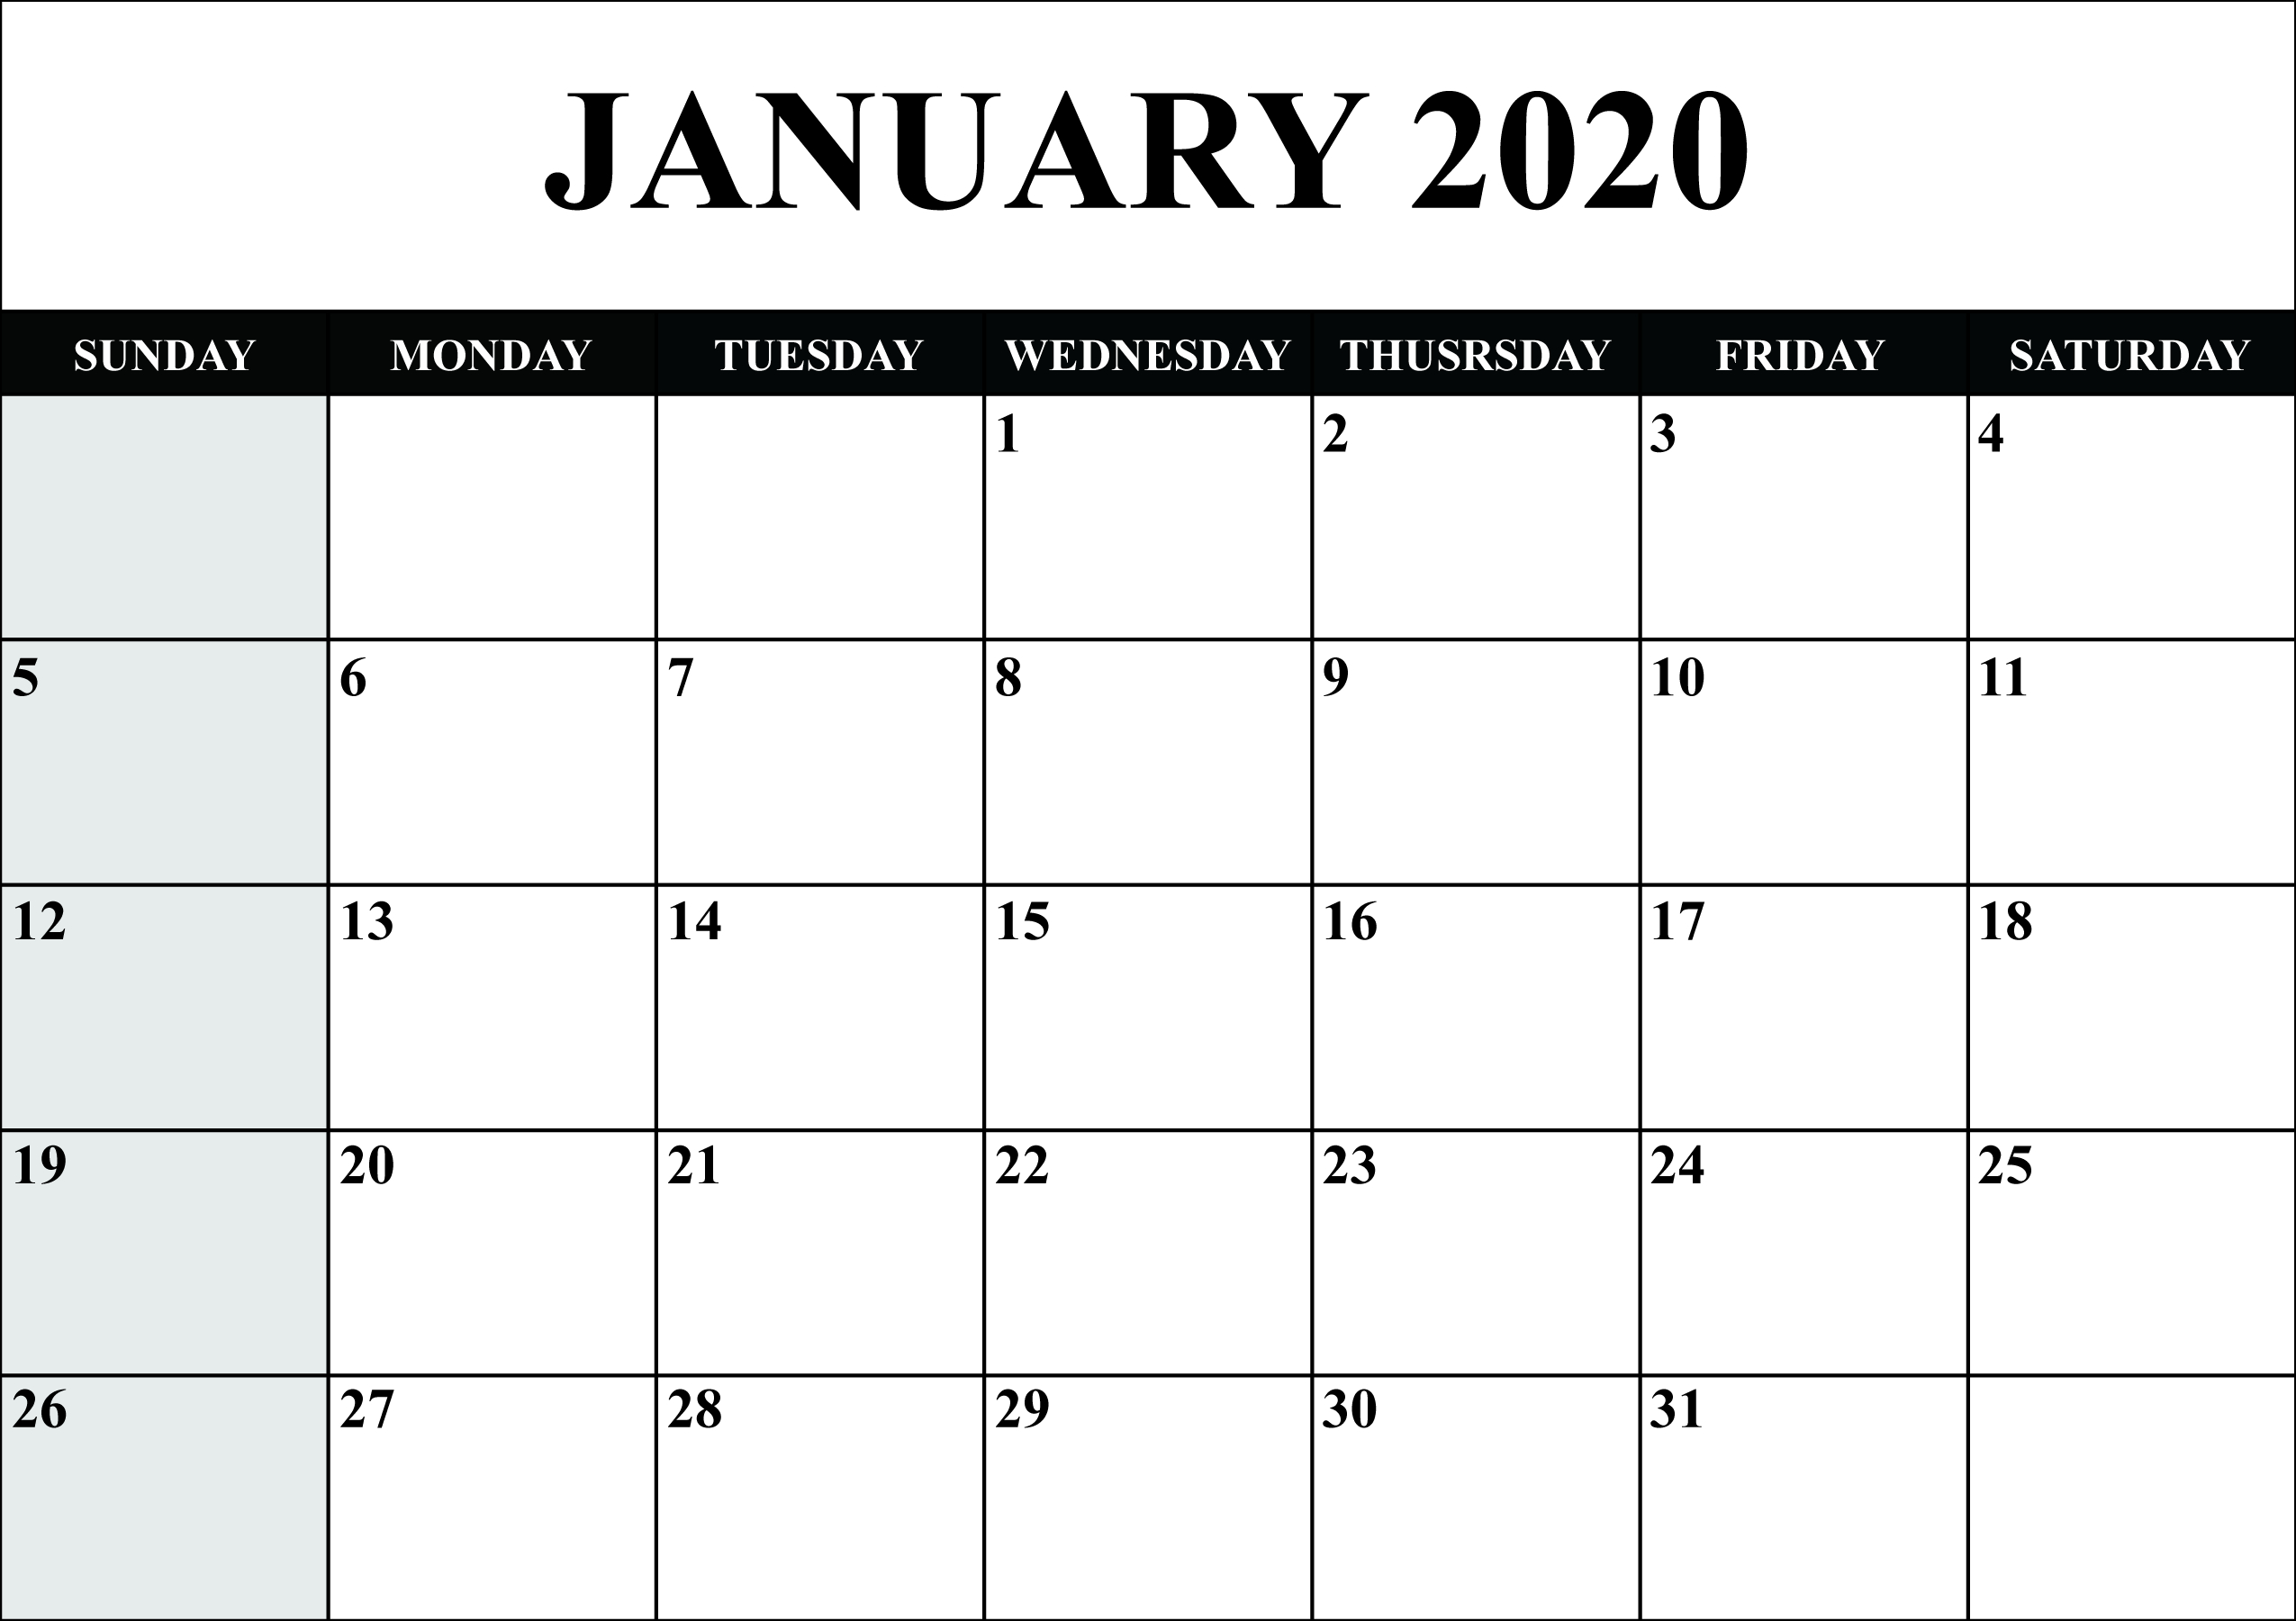 Free Blank January 2020 Calendar Printable In Pdf, Word, Excel intended for Printable 2020 Monthly Calendars Starting With Monday